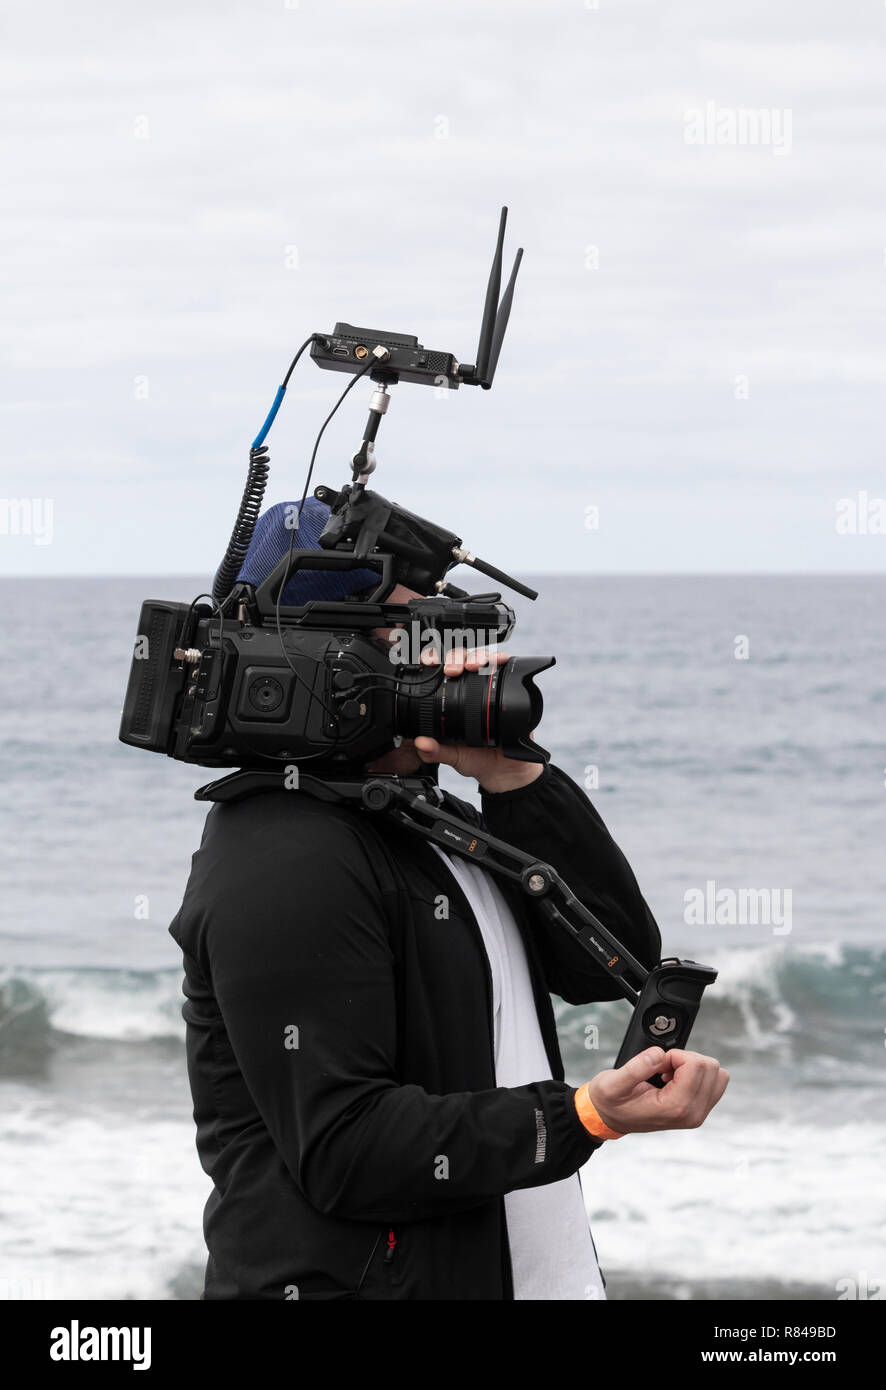 Video camera with wifi router streaming live coverage of surfing event. - Stock Image